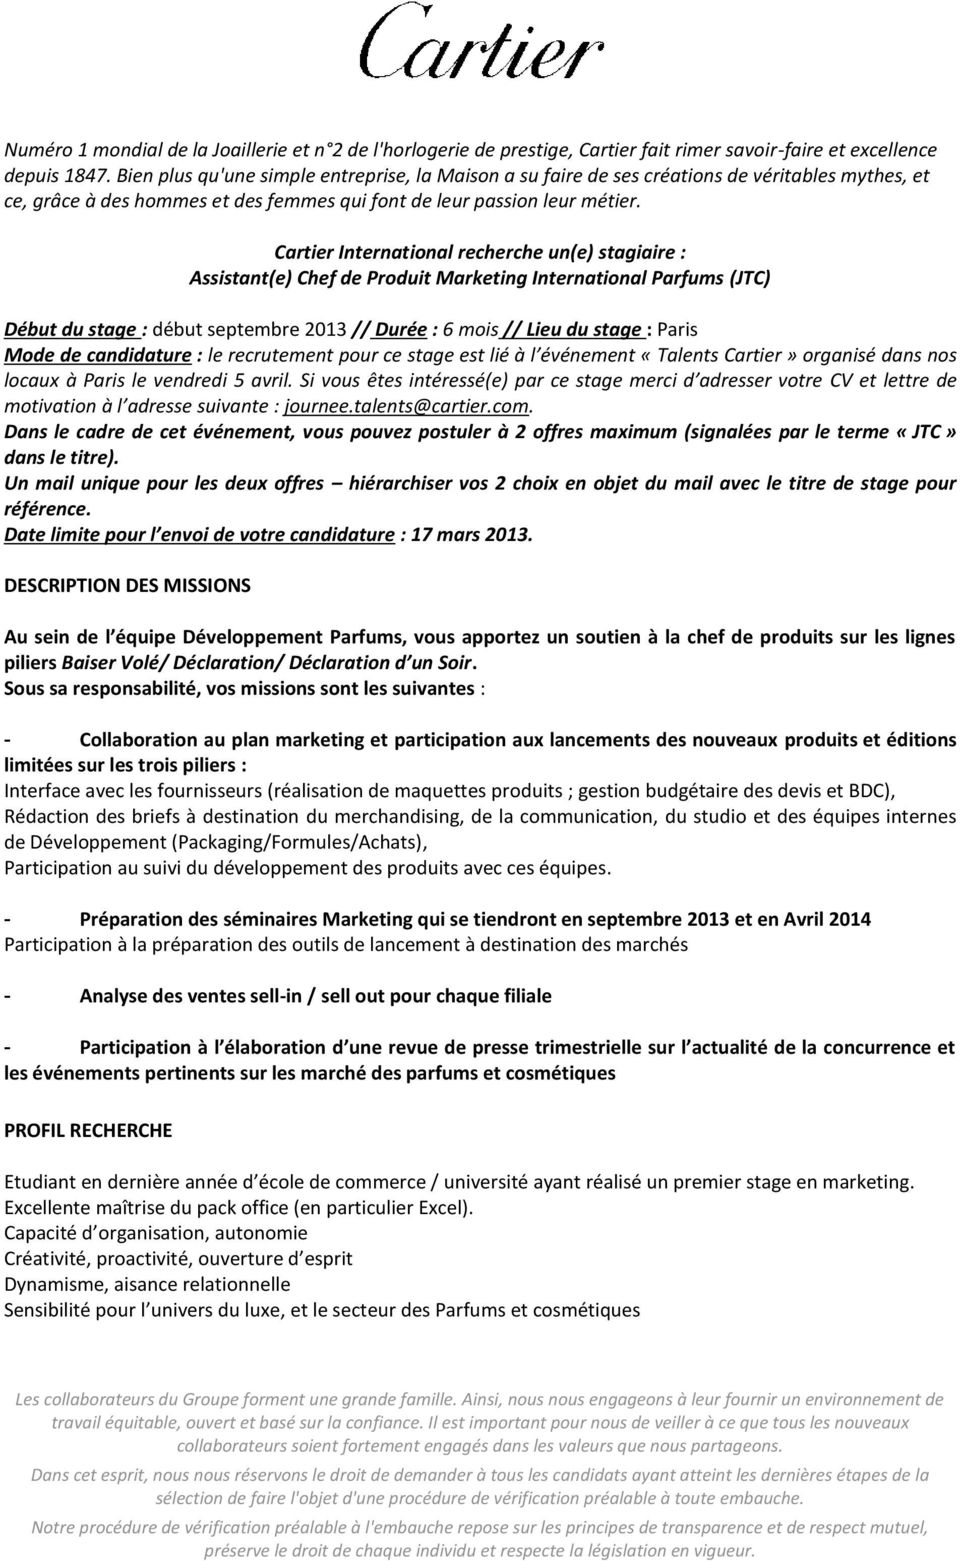 Un eStagiaireAssistant Recherche Cartier International eChef c1lKTJF3